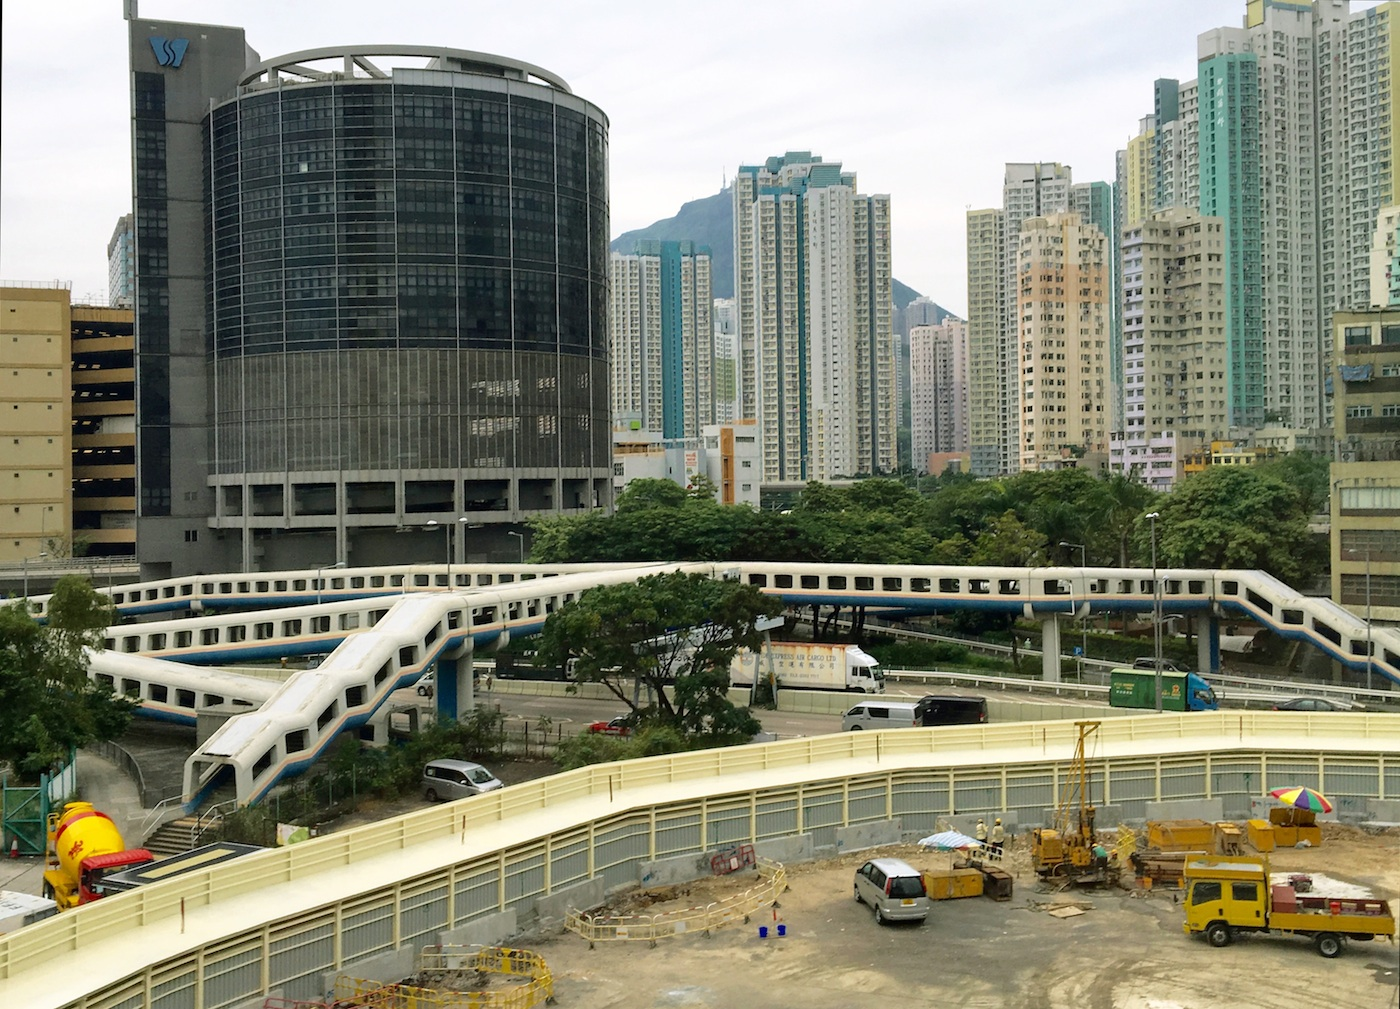 A footbridge or a train on Wai Yip street Kowloon Bay